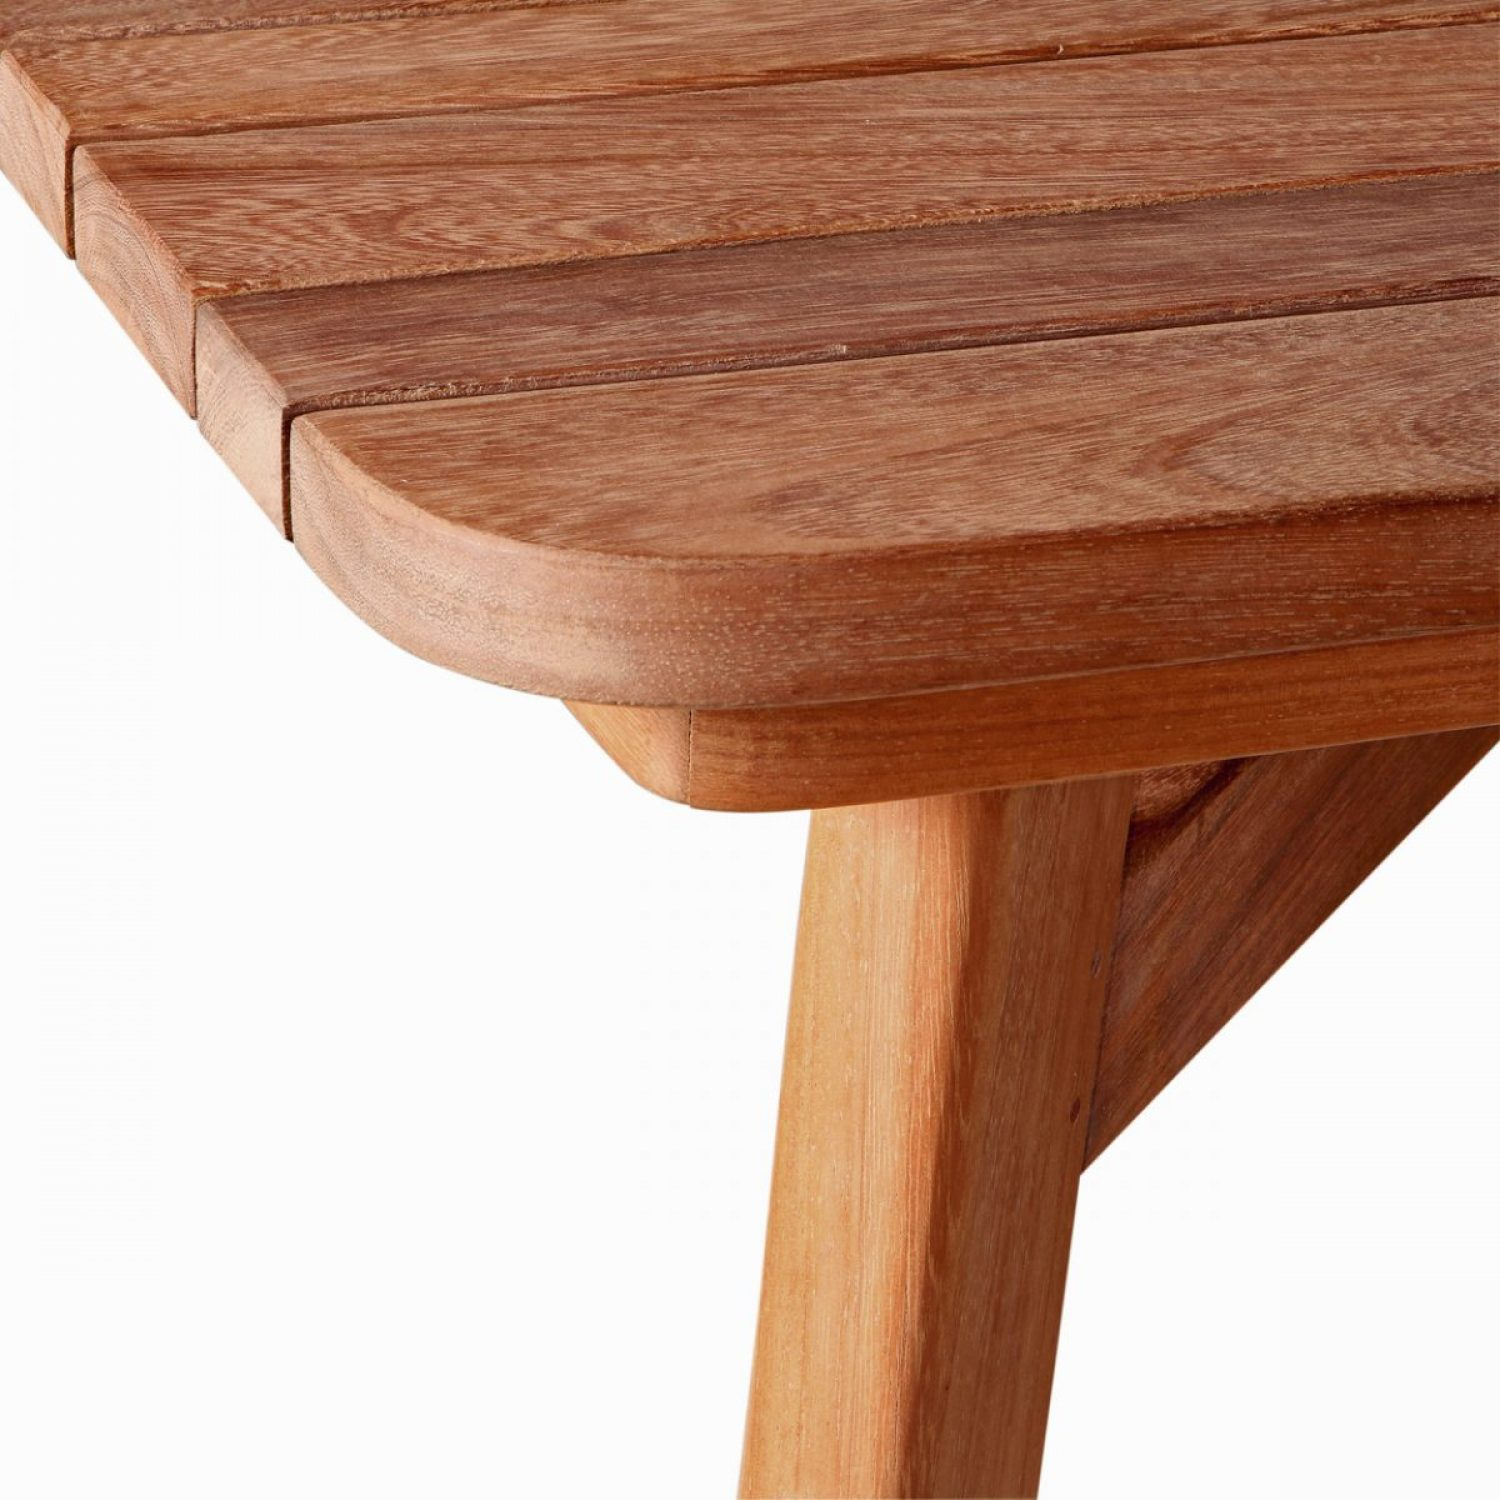 Savanna Timber Table